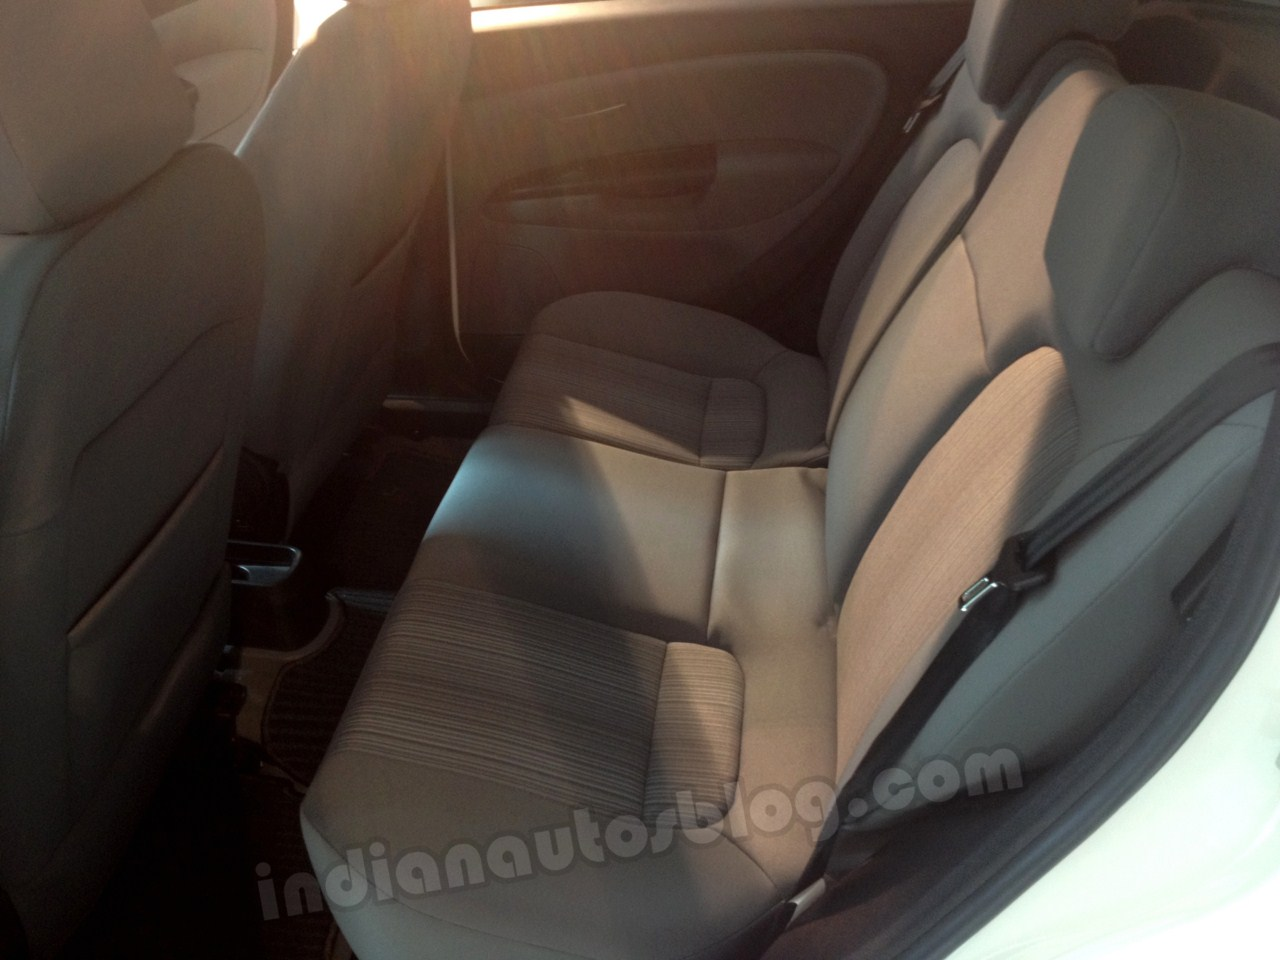 Fiat Punto Absolute Edition rear seat